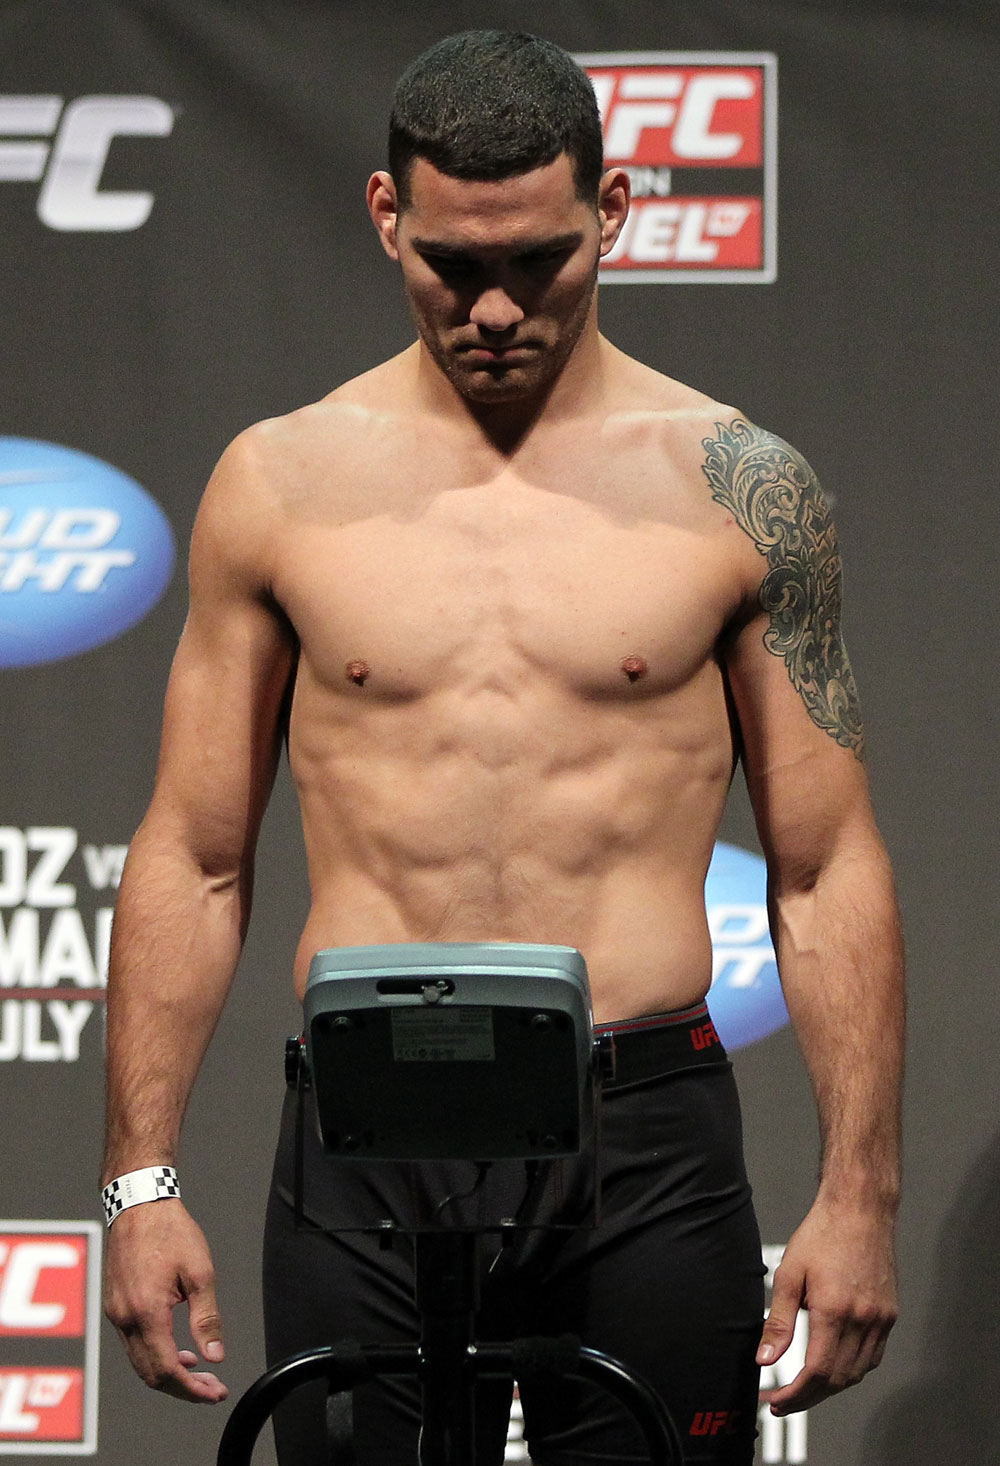 SAN JOSE, CA - JULY 10:   Chris Weidman makes weight during the UFC on Fuel TV weigh in at HP Pavilion on July 10, 2012 in San Jose, California.  (Photo by Josh Hedges/Zuffa LLC/Zuffa LLC via Getty Images)